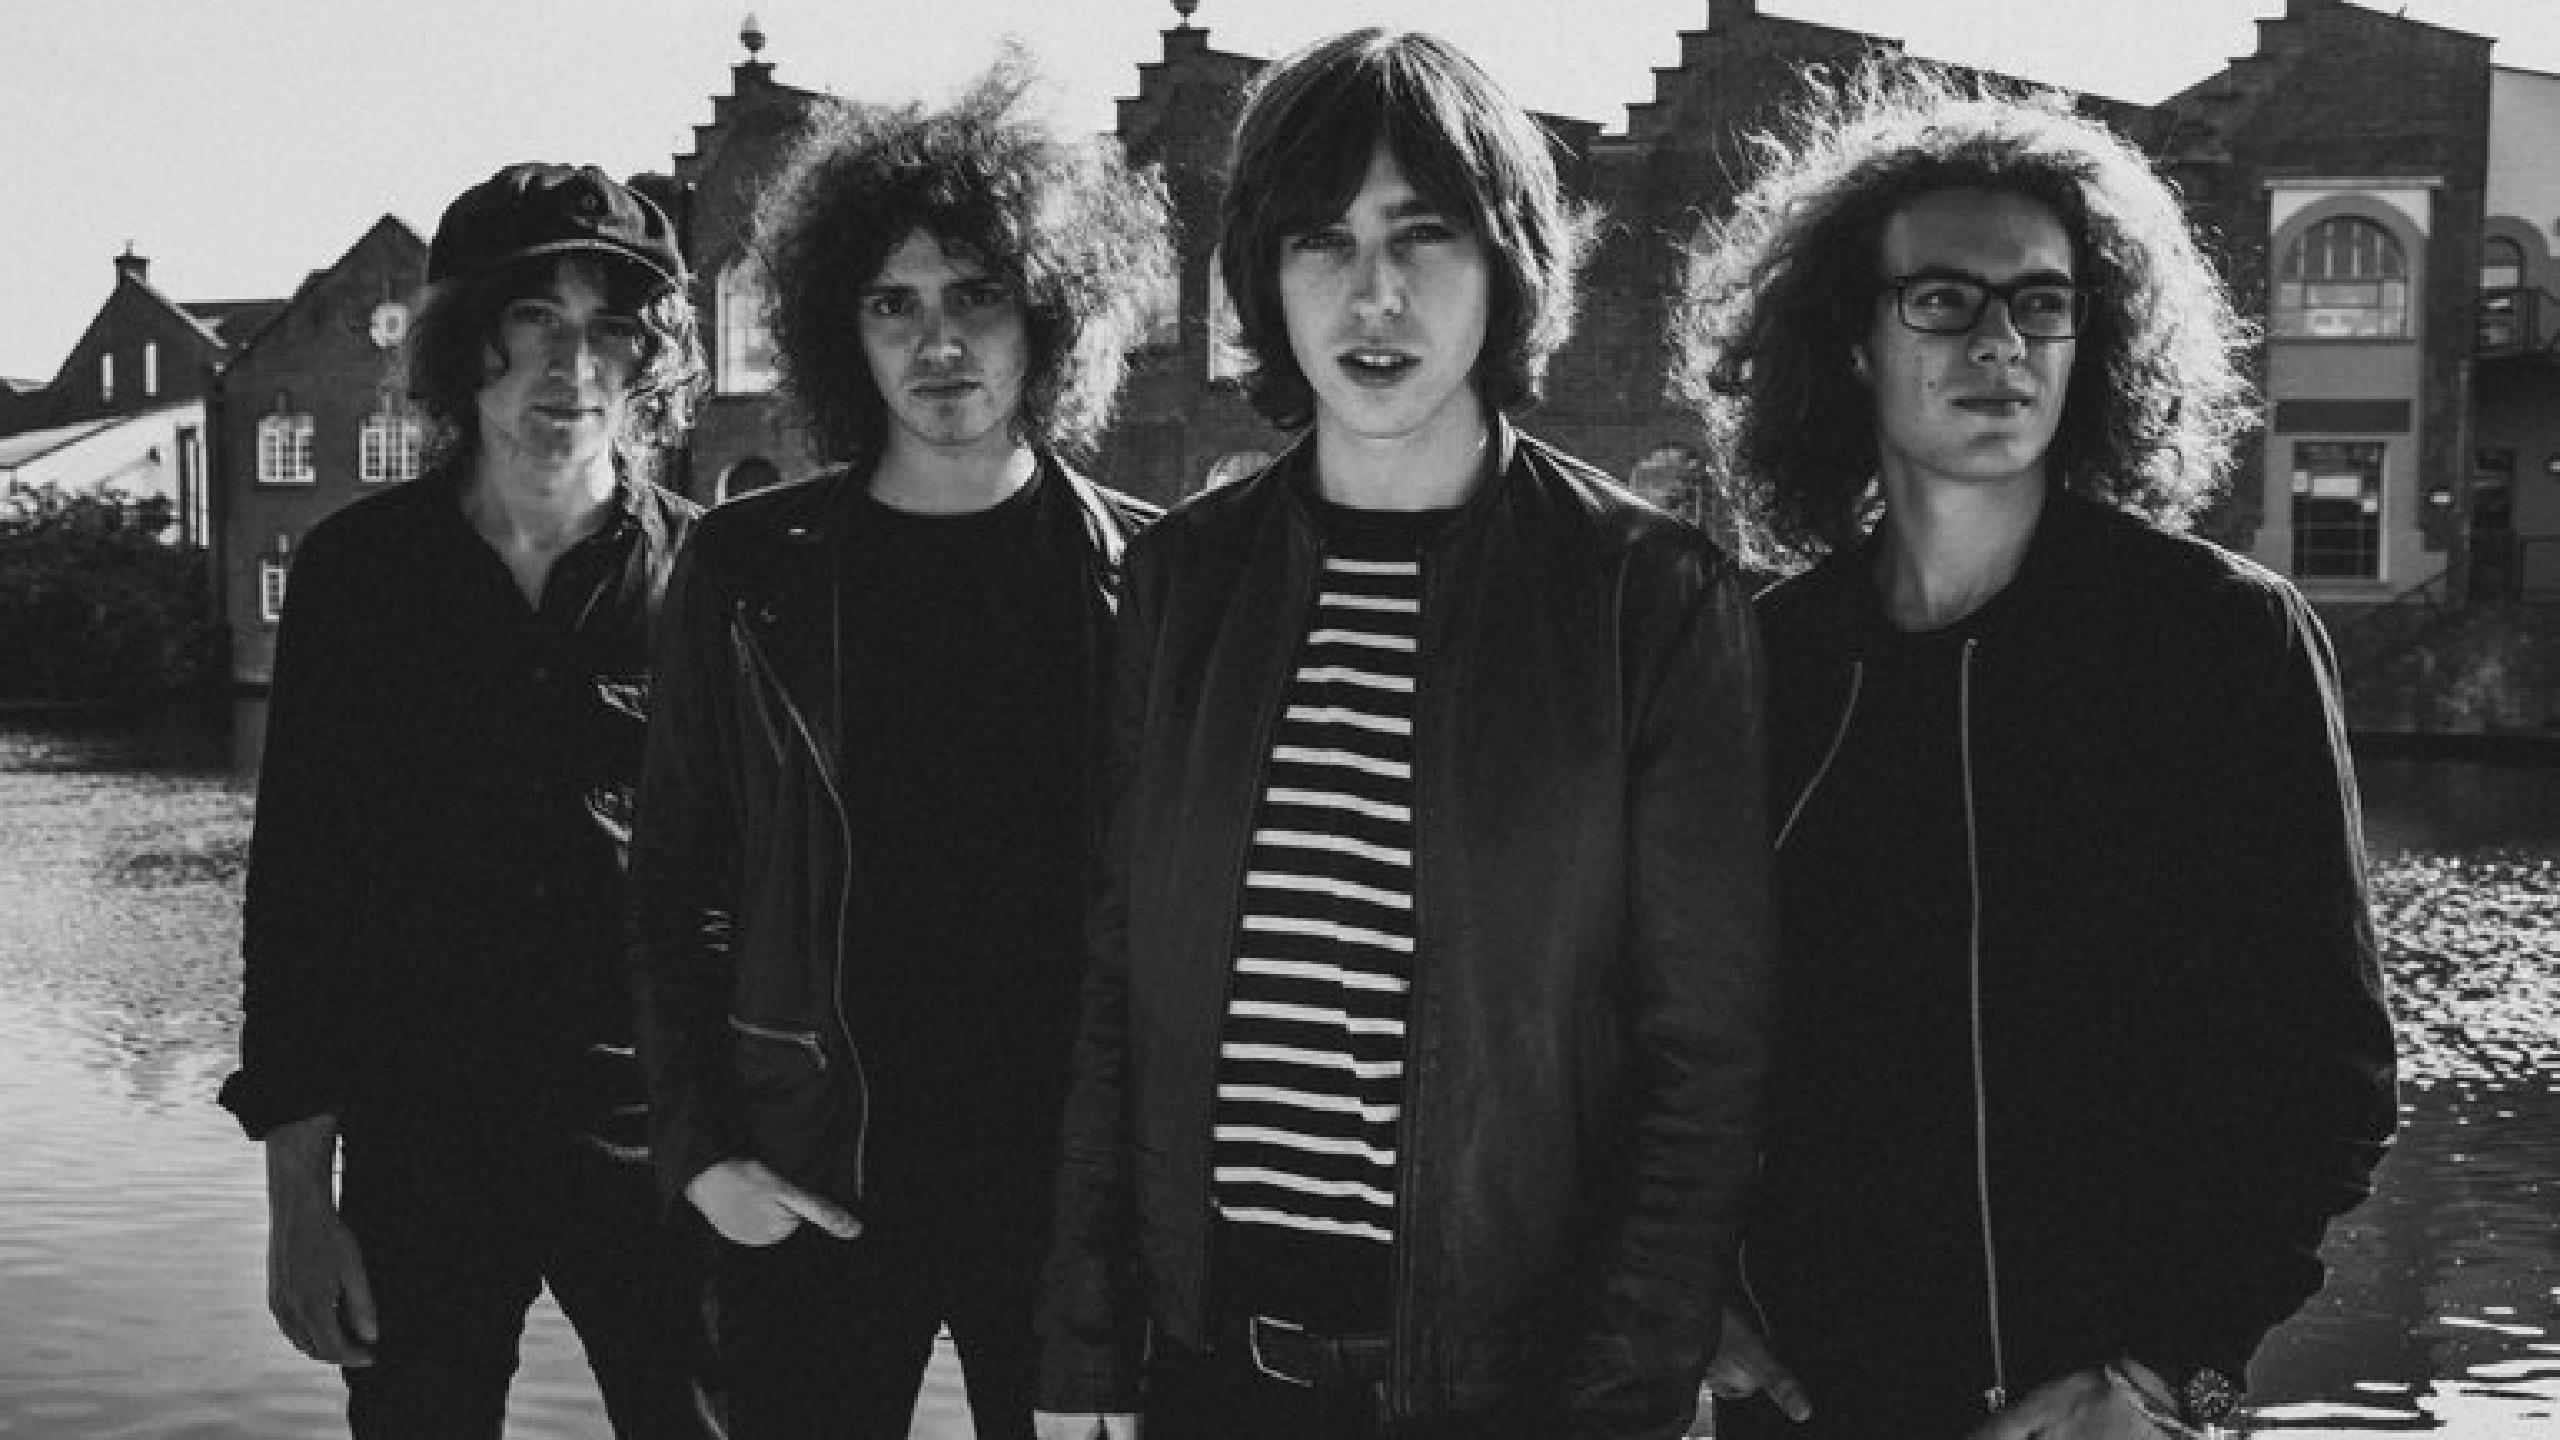 Catfish And The Bottlemen Tour 2020 Catfish and the Bottlemen tour dates 2019 2020. Catfish and the